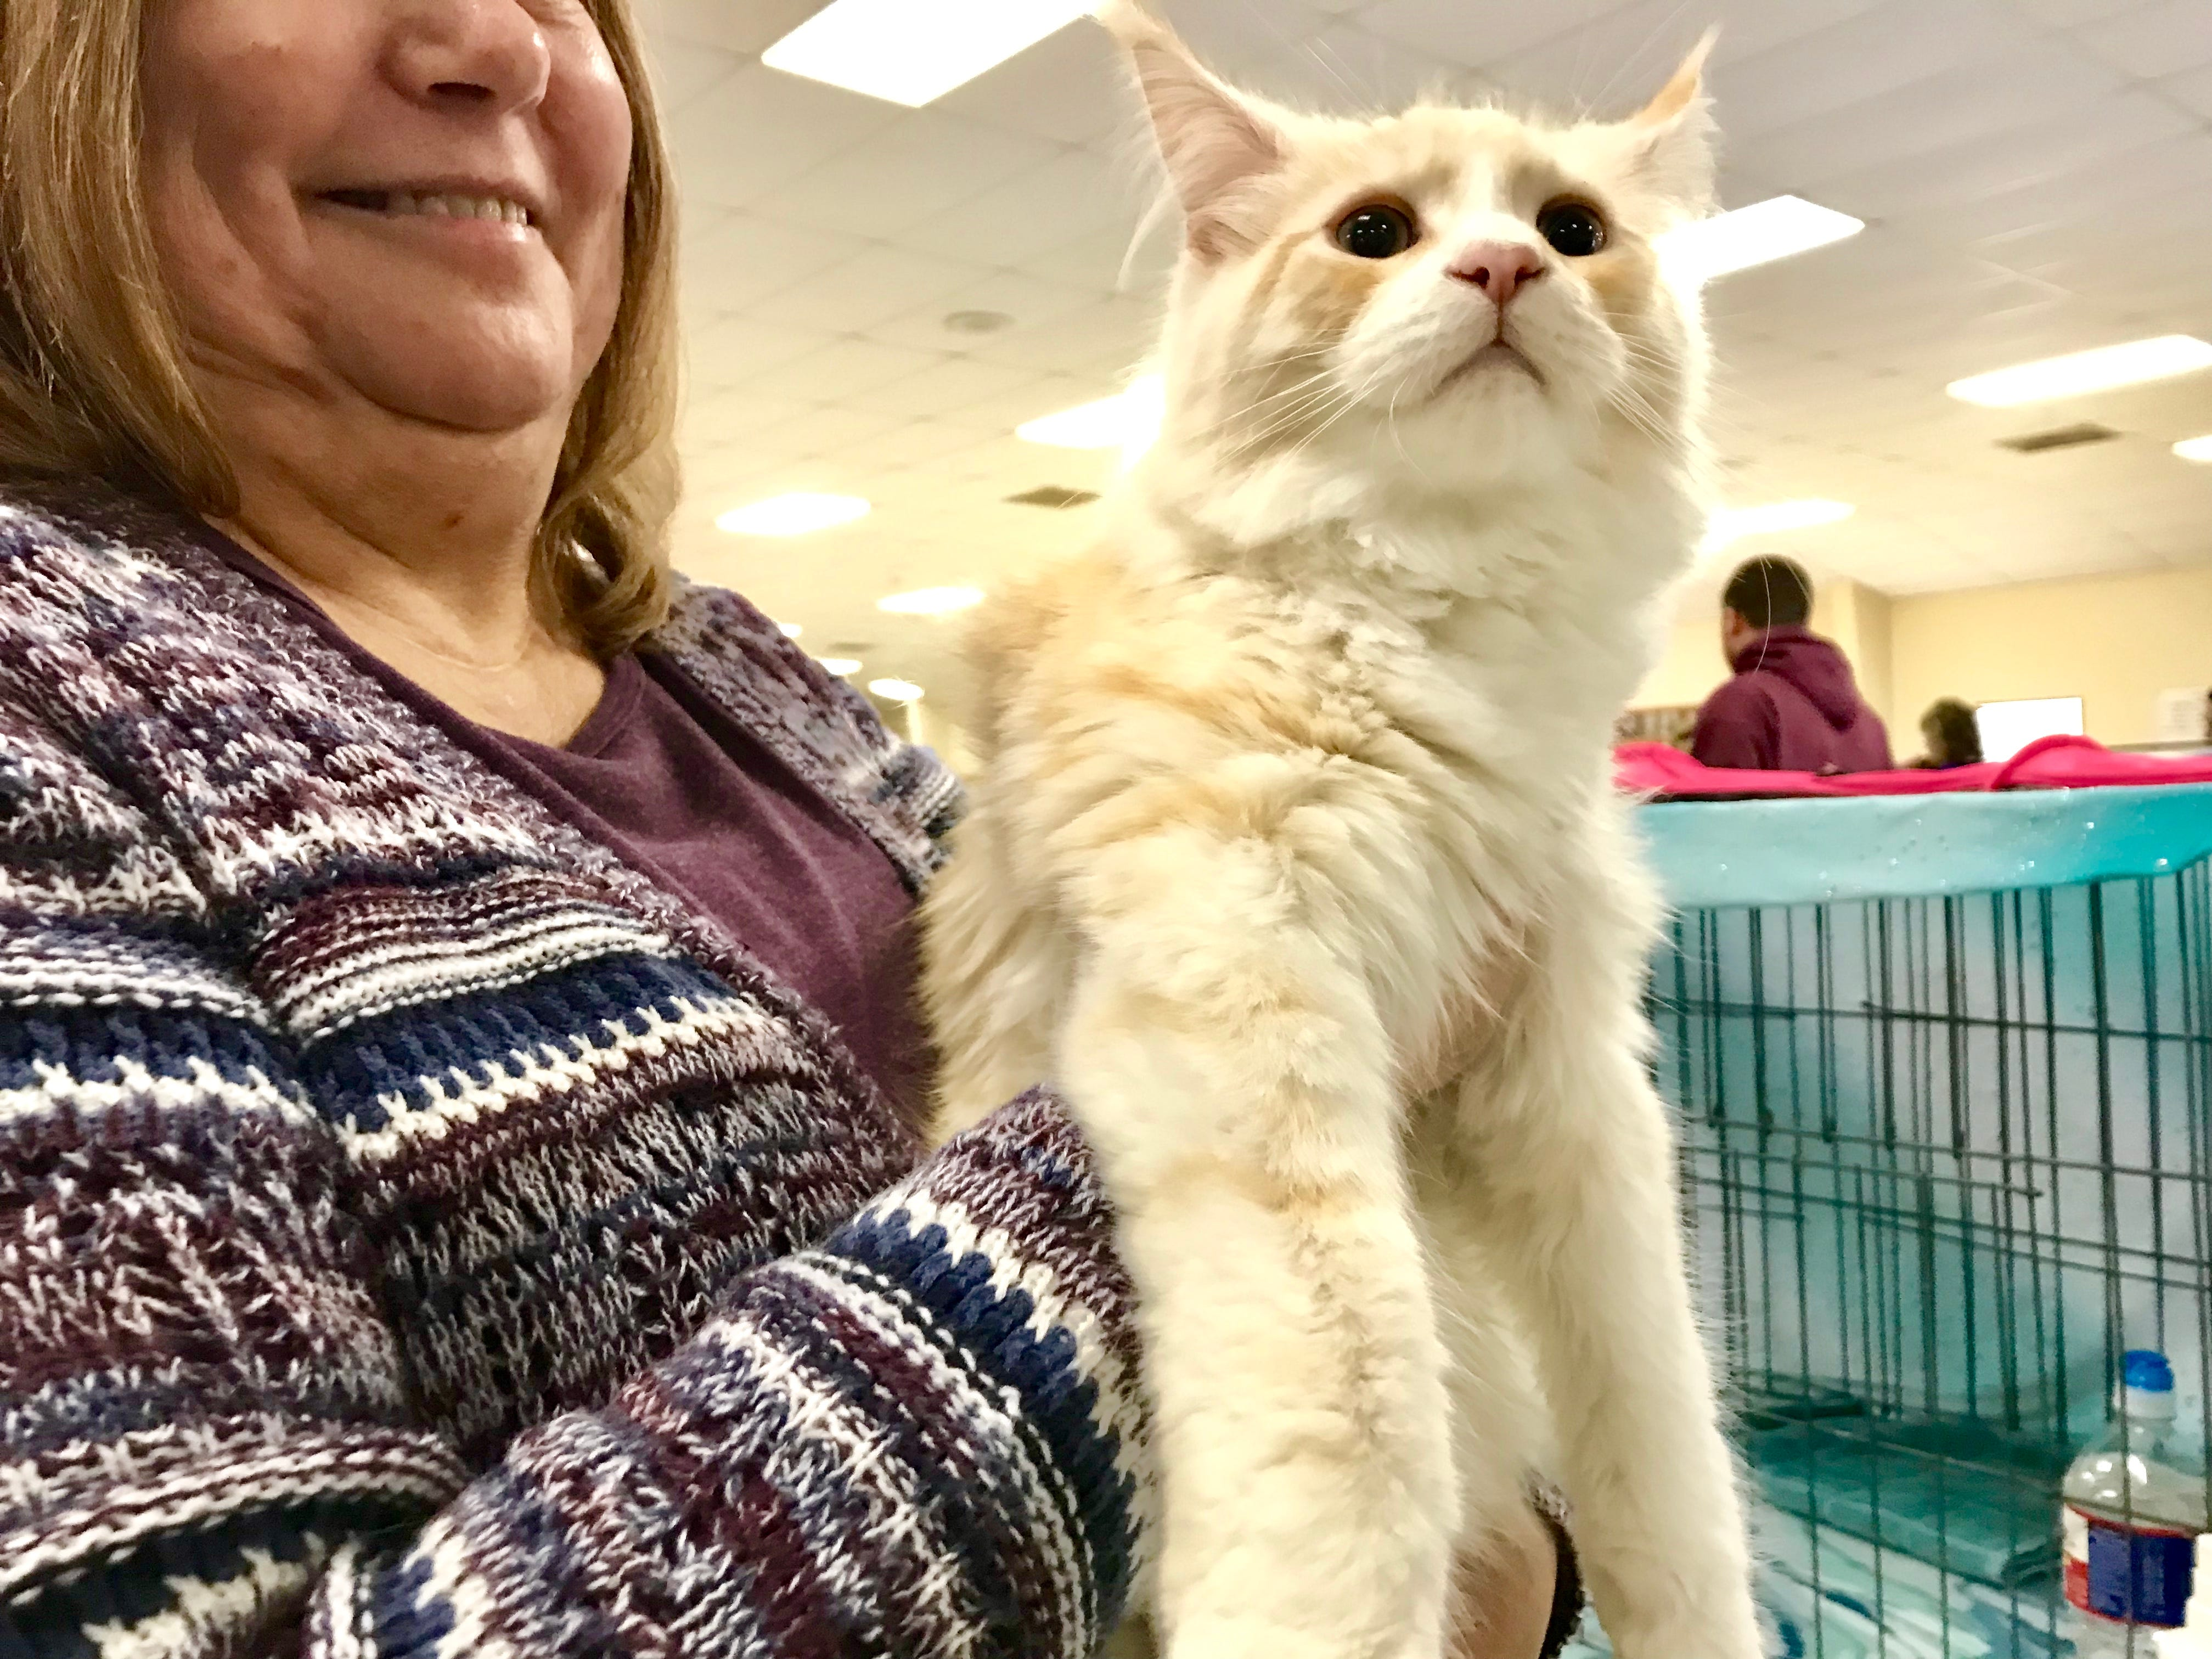 """Lois Gollmore, of Willard, holds Maine Coon Wild Pride Einstein Divine, of the LJ Cool Catz, during """"The Art of Cats"""" show presented by South Central Rendezvous Cat Club at the Branson-Hollister Lions Club March 3."""